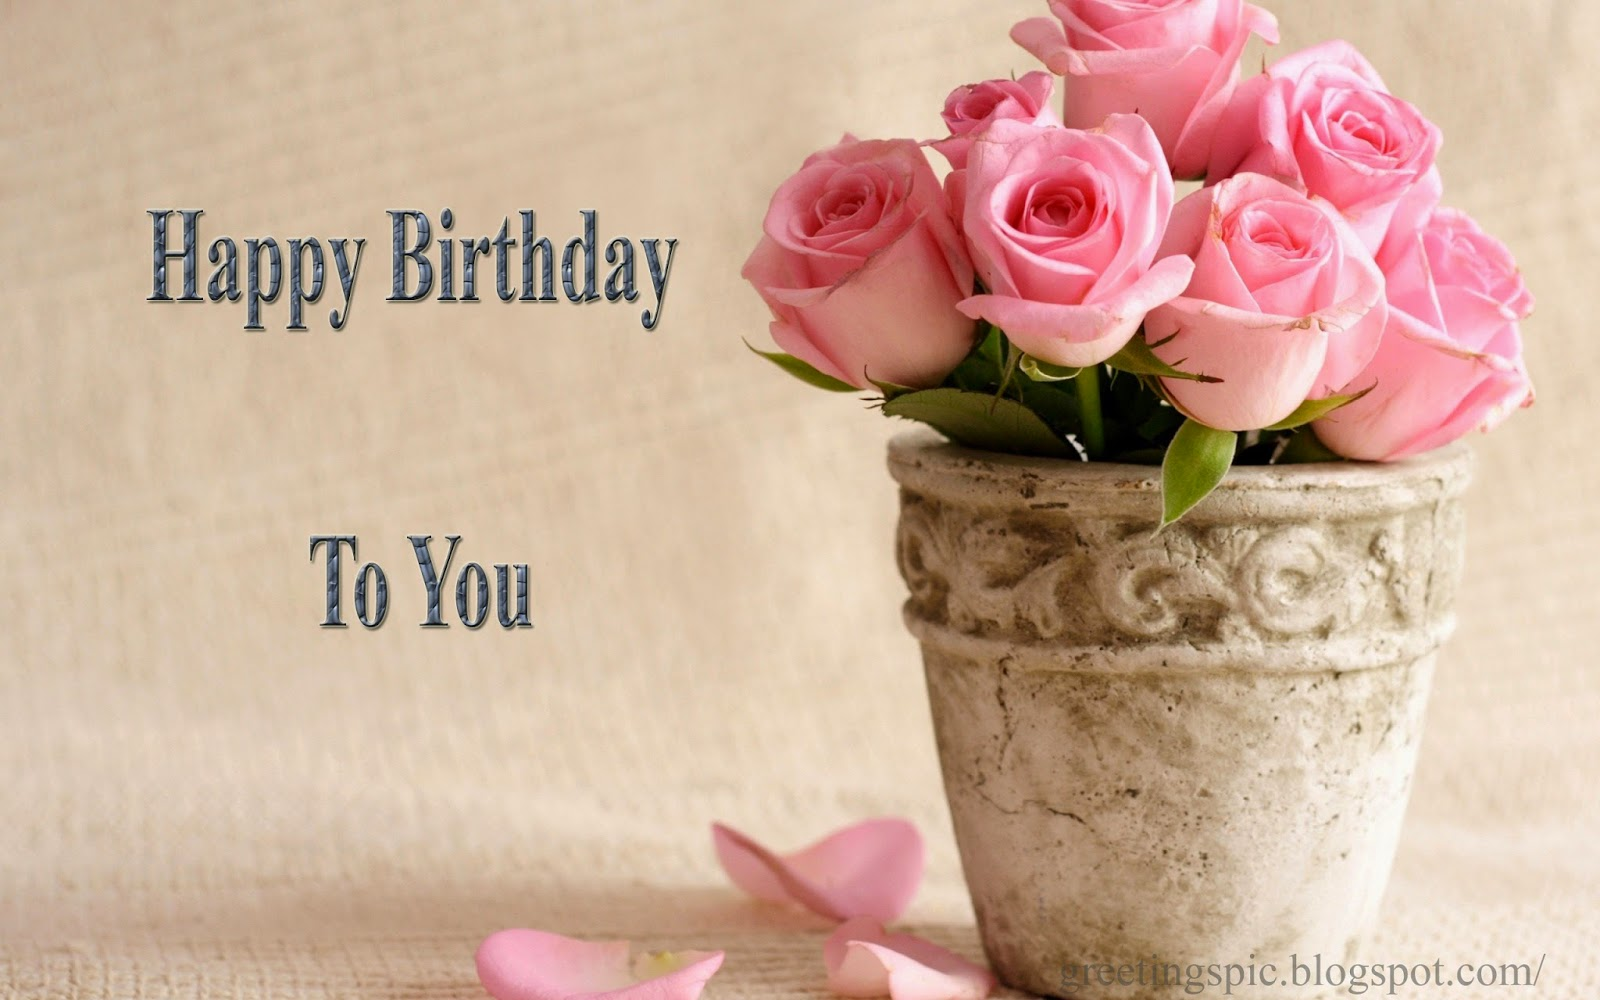 Happy Birthday Rose Flowers Images